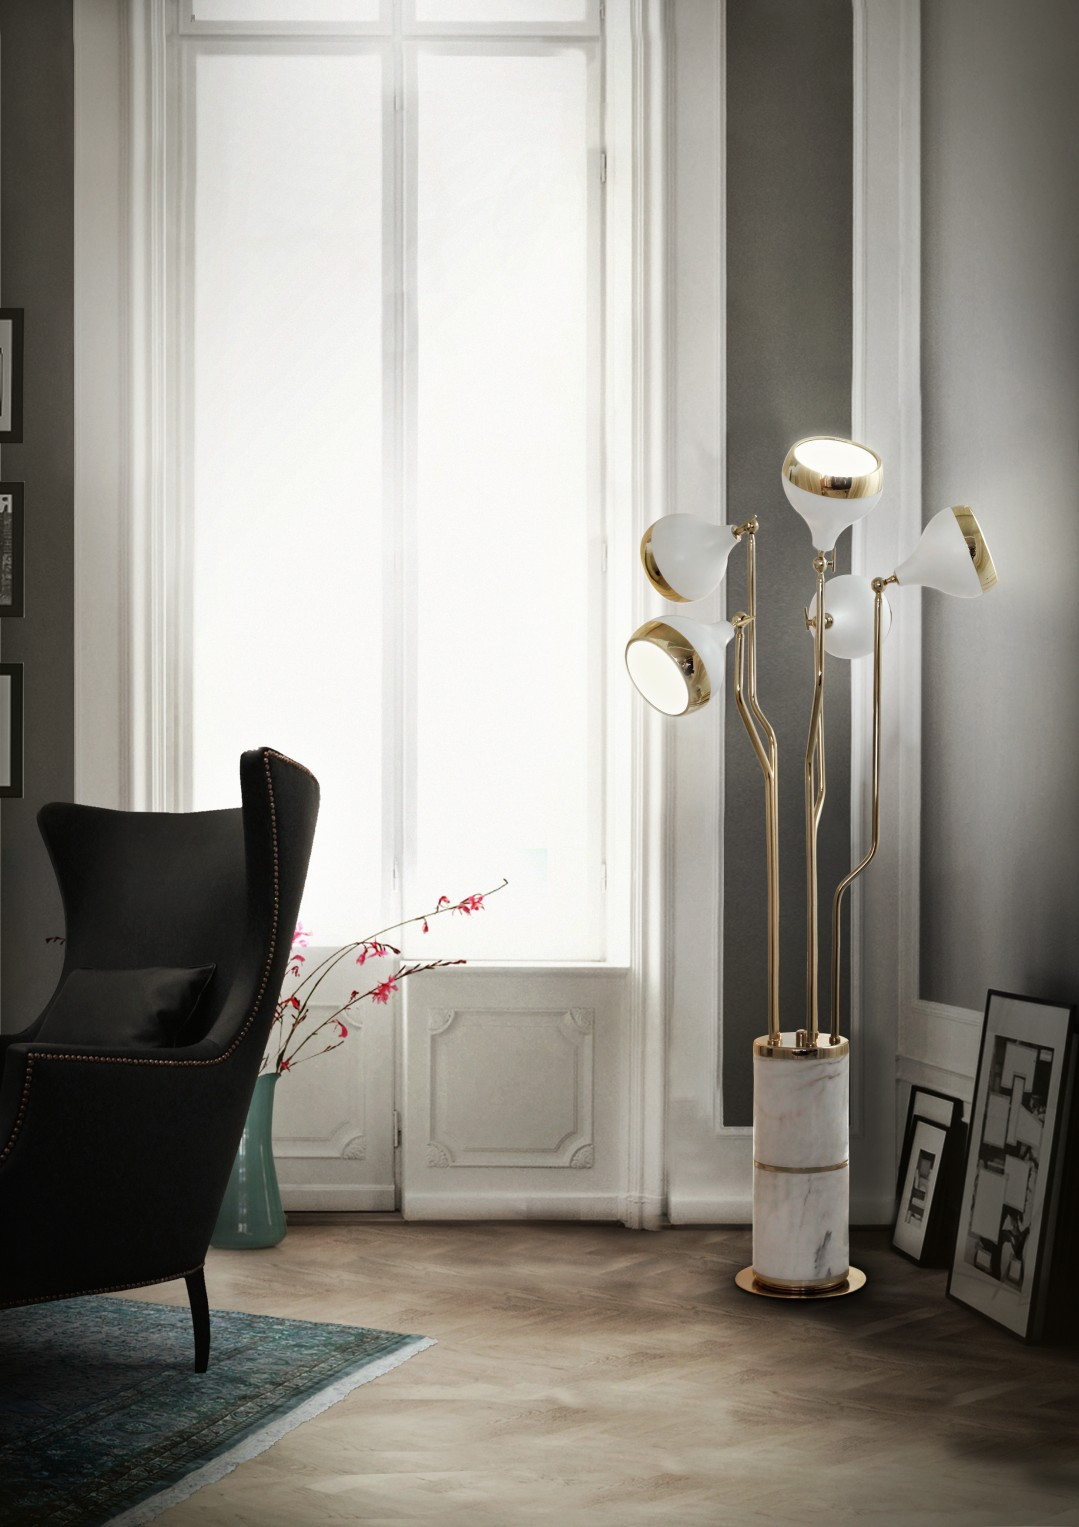 floor samples floor samples Get The Best FLoor Lamps For Your Living Room With Floor Samples! Get The Best FLoor Lamps For Your Living Room With Floor Samples6